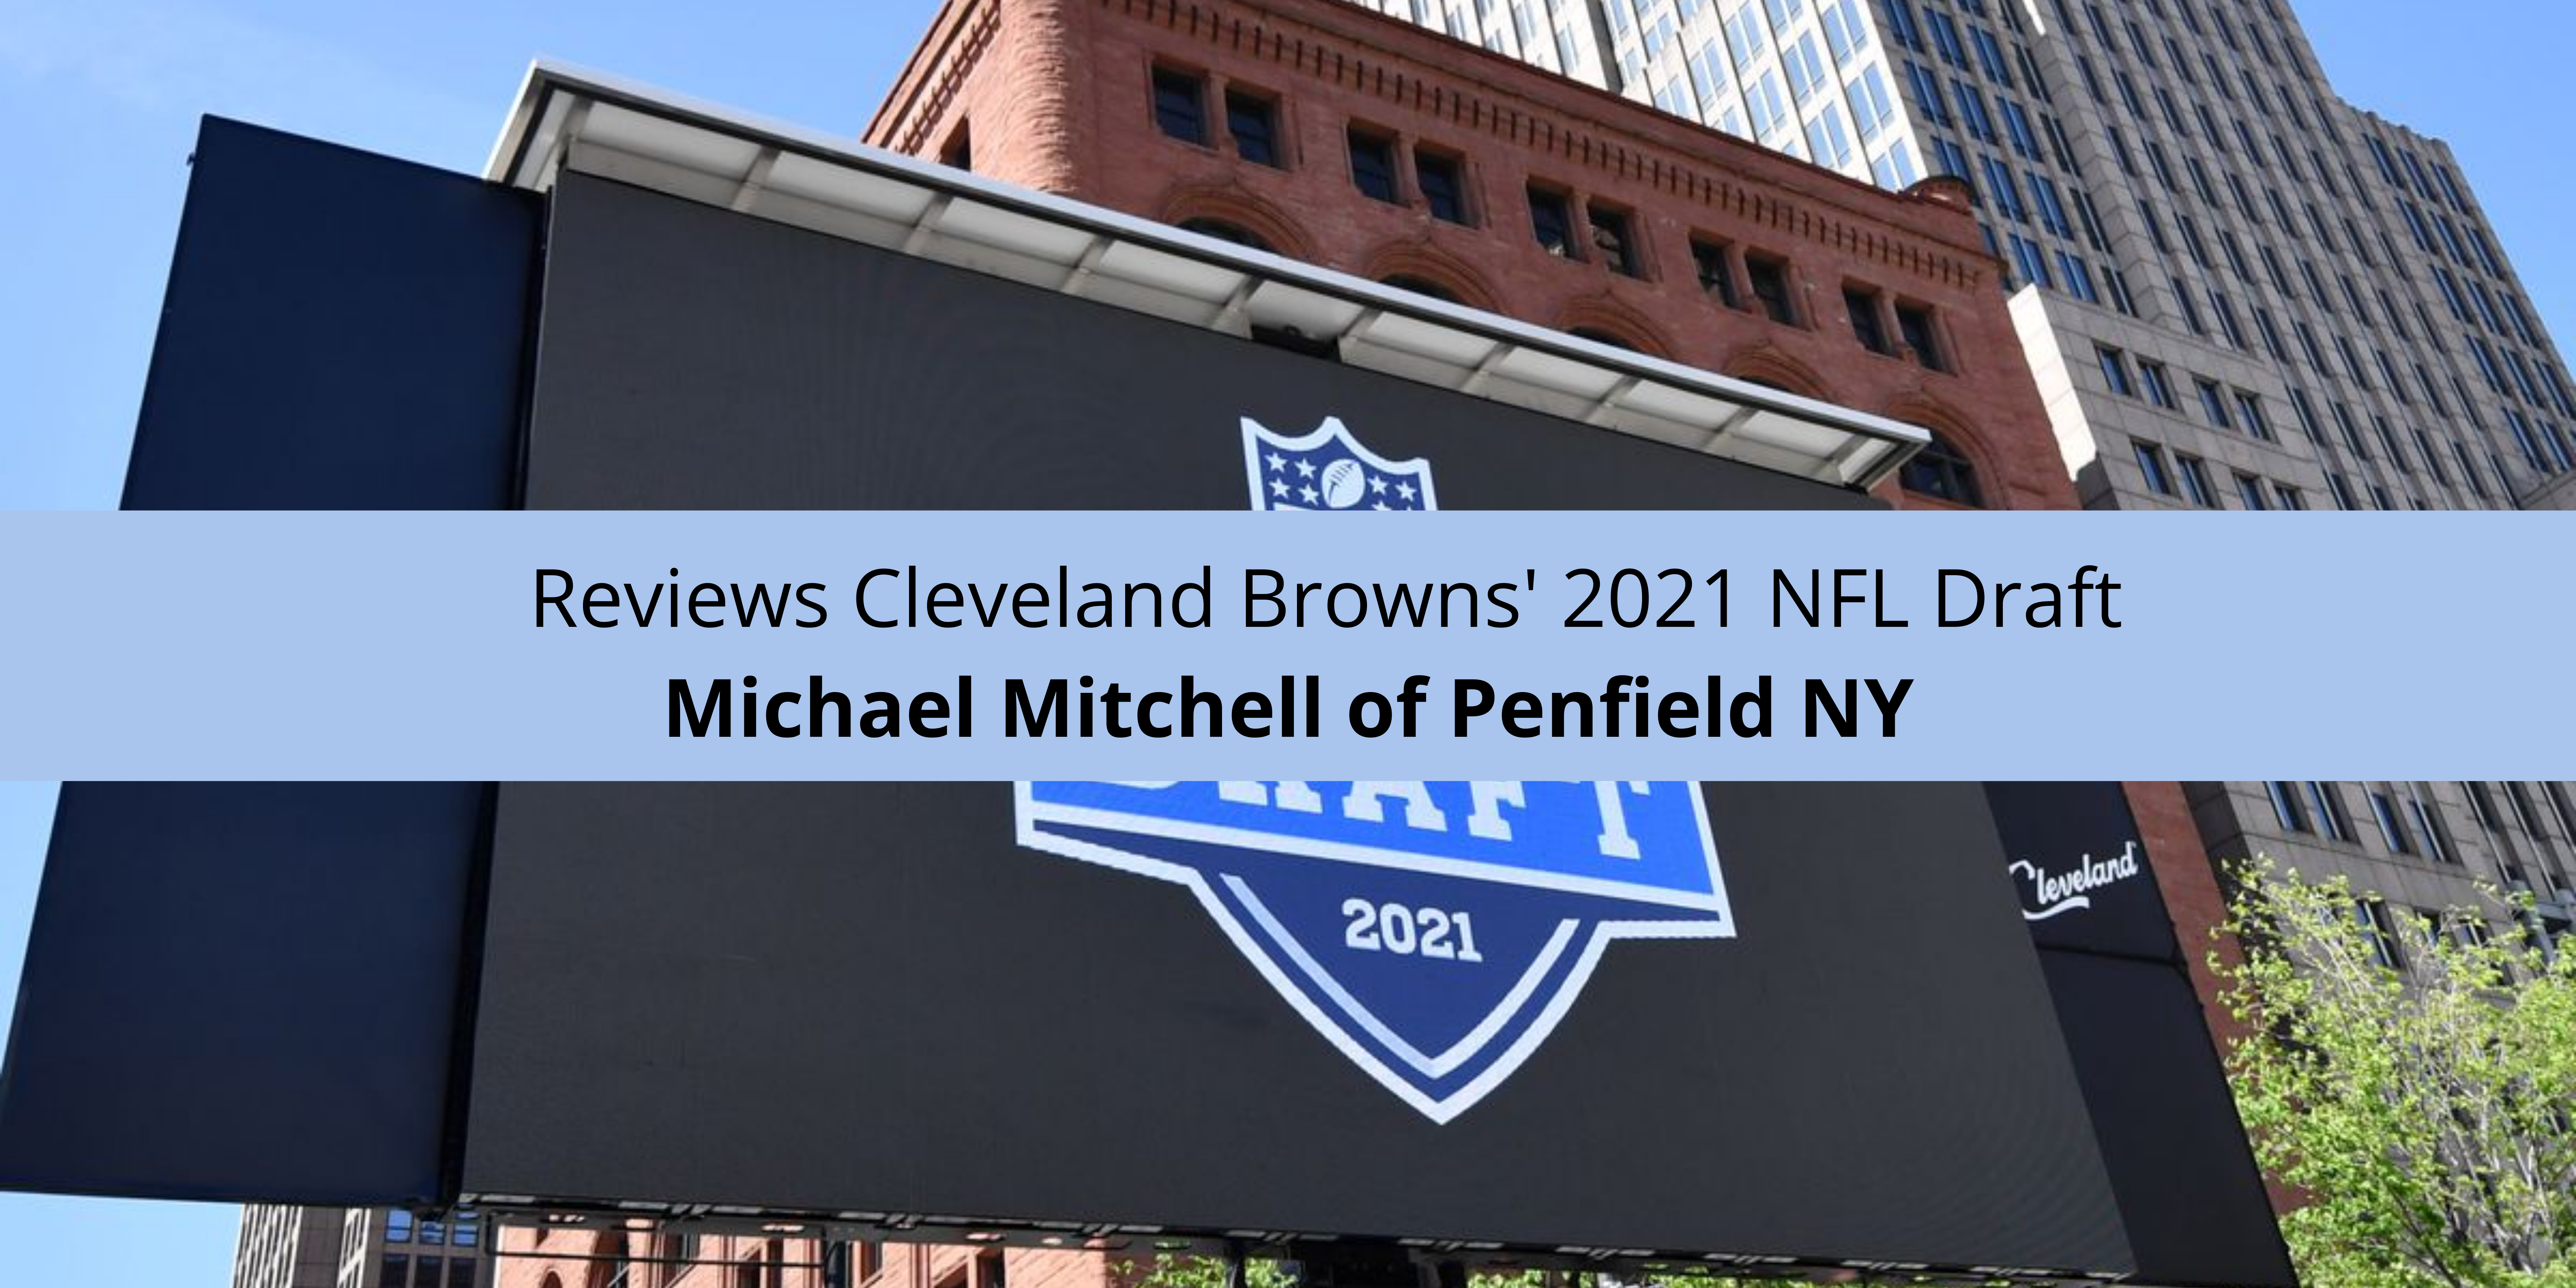 Michael Mitchell of Penfield NY reviews Cleveland Browns' 2021 NFL Draft